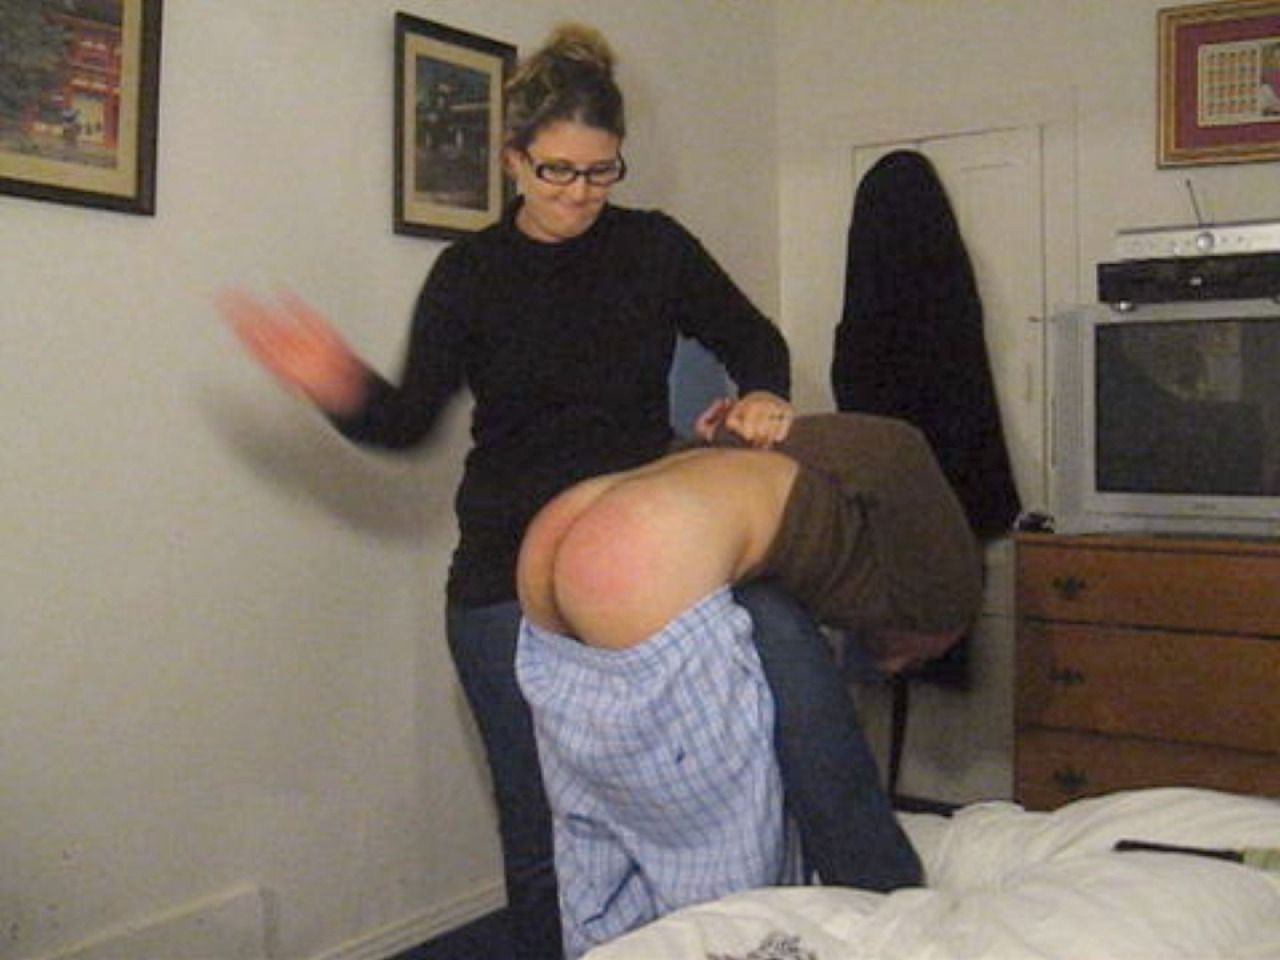 Husband spanking disobedient wife videos, momss fuck videos